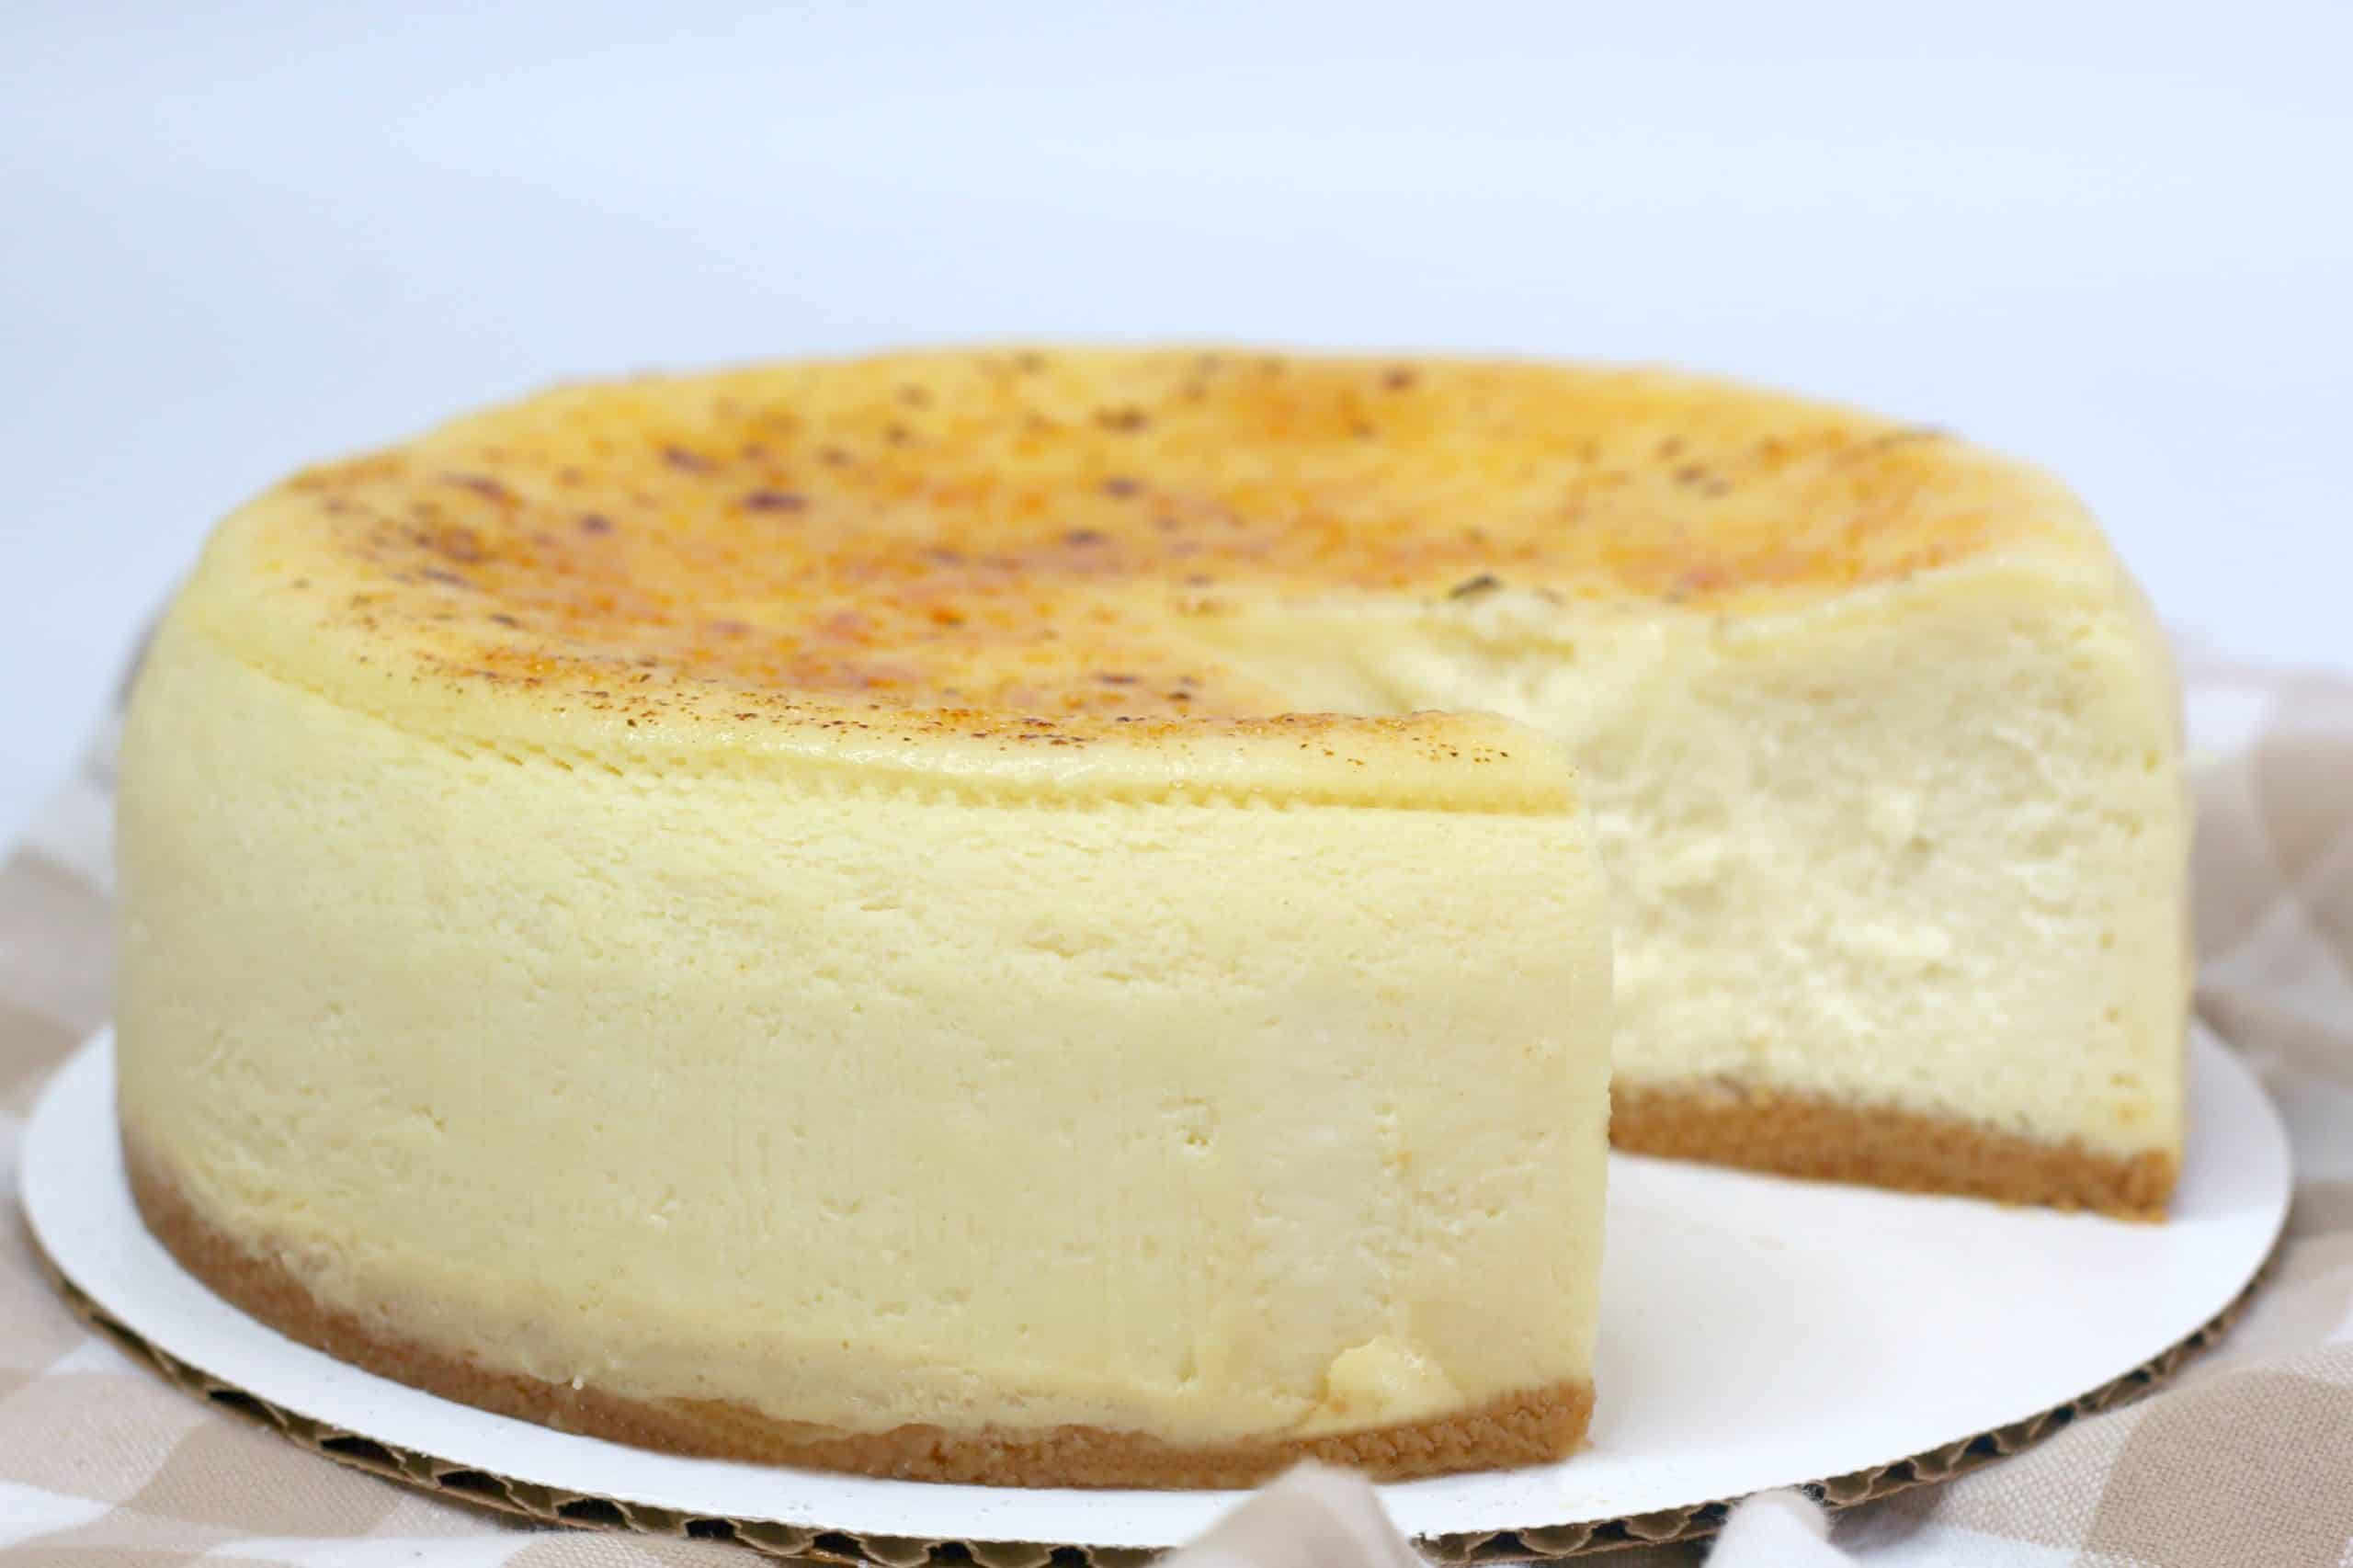 Whole Creme Brulee Cheesecake